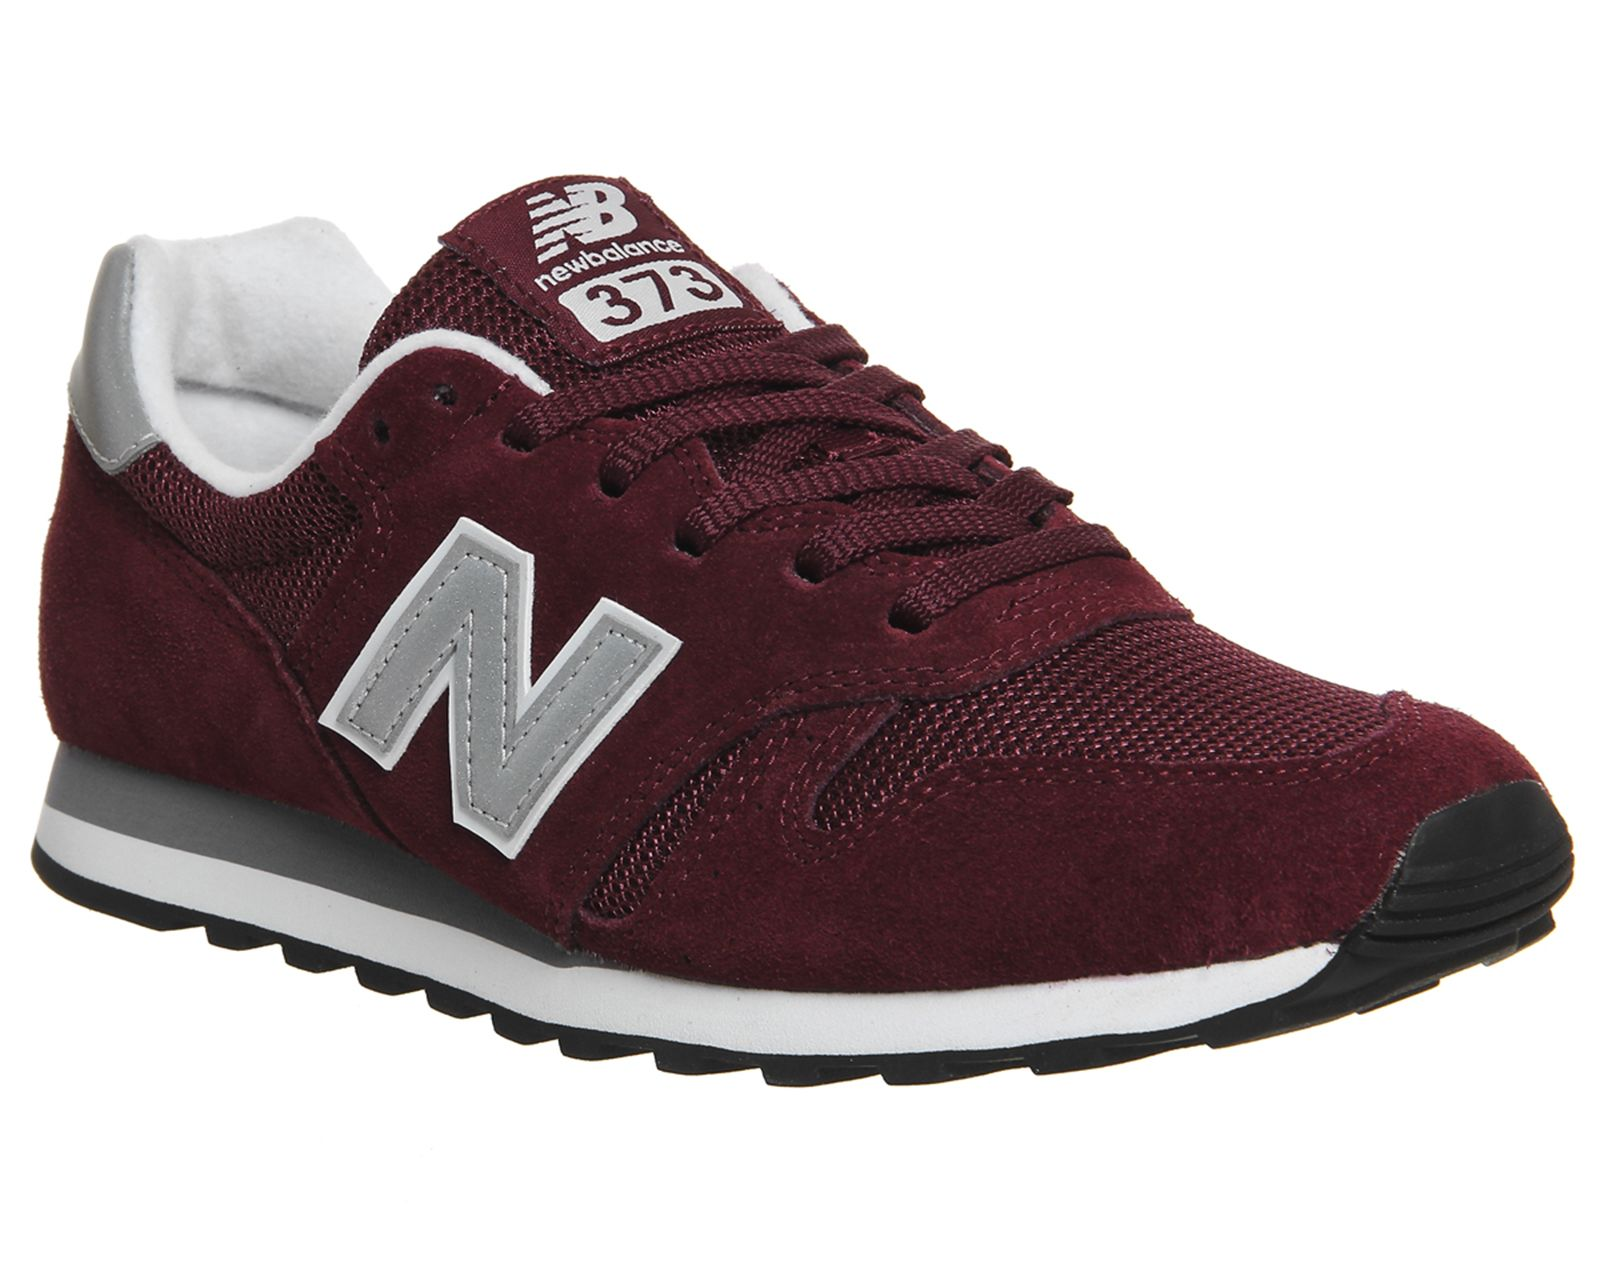 new balance 373 navy & burgundy suede trainers